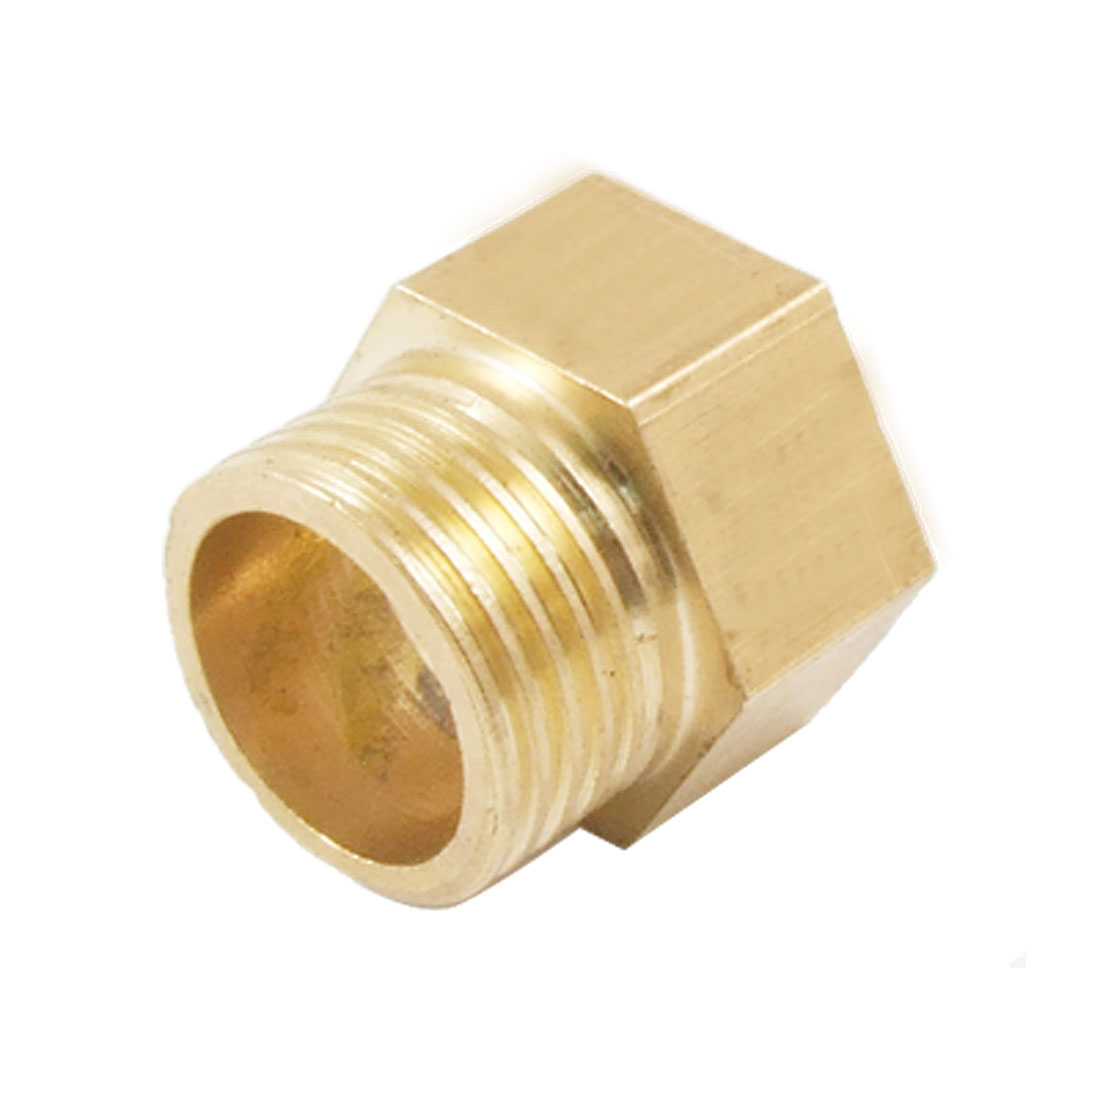 Pipe Reducer 20 x 19mm Brass Hex Bushing Hose Joint Connector